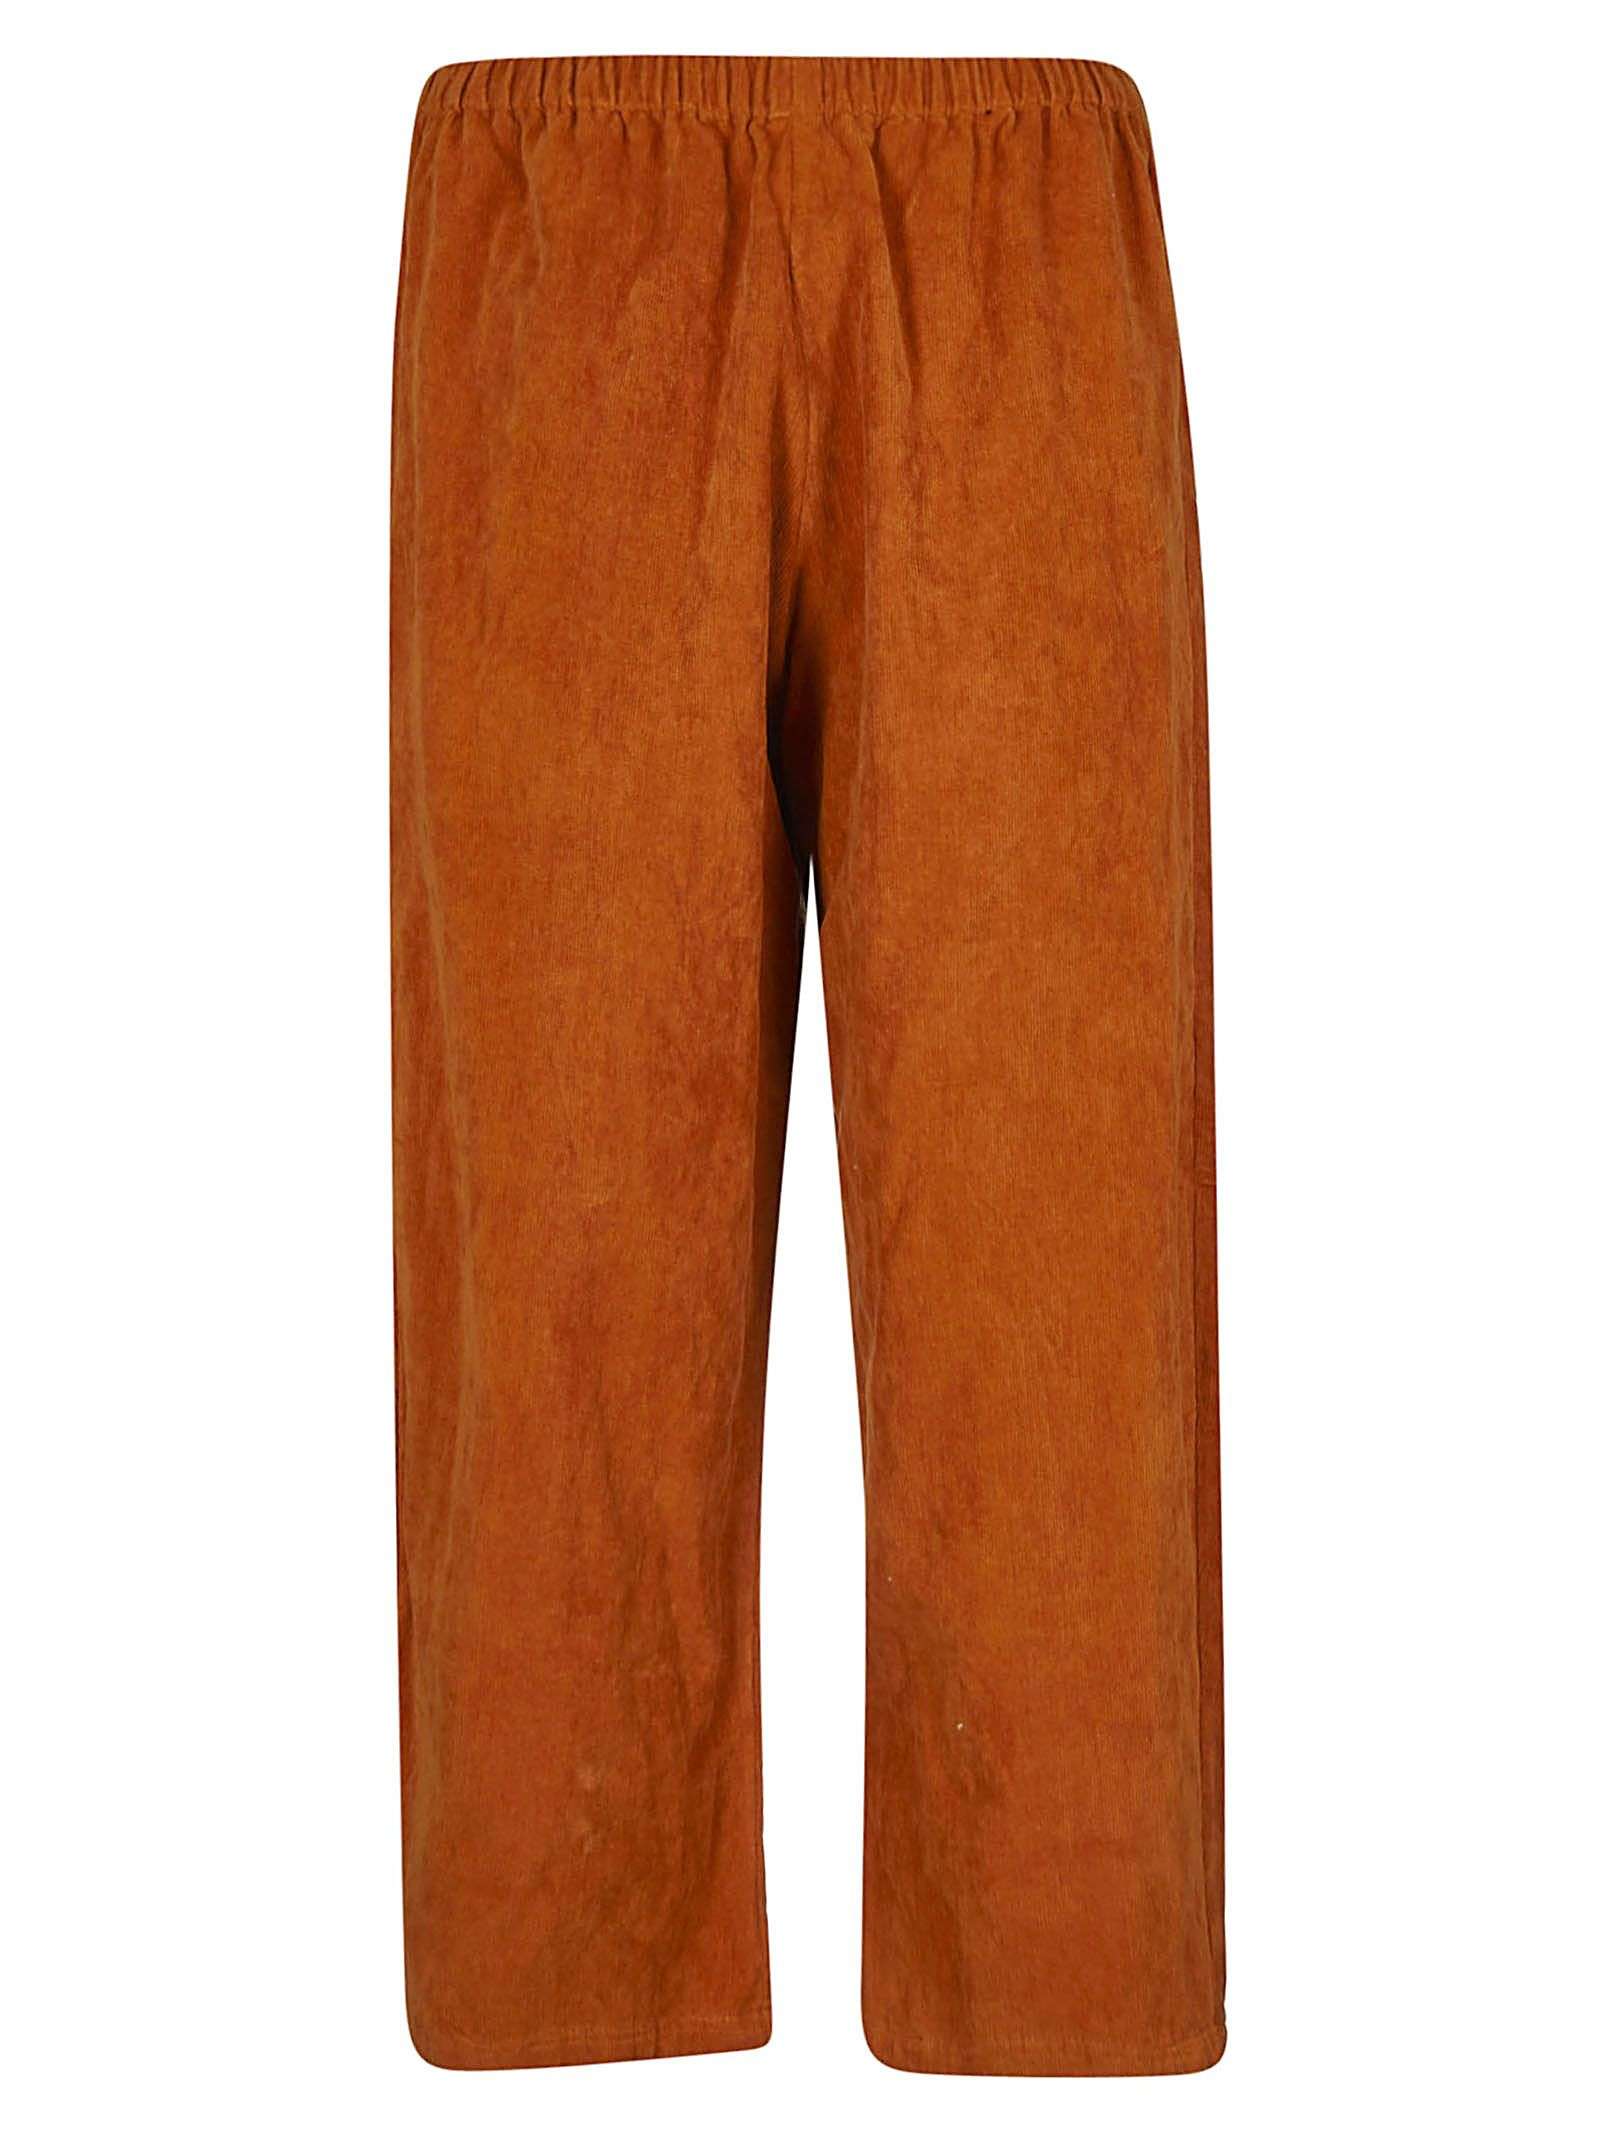 A PUNTO B A.B Elasticated Cropped Trousers in Orange